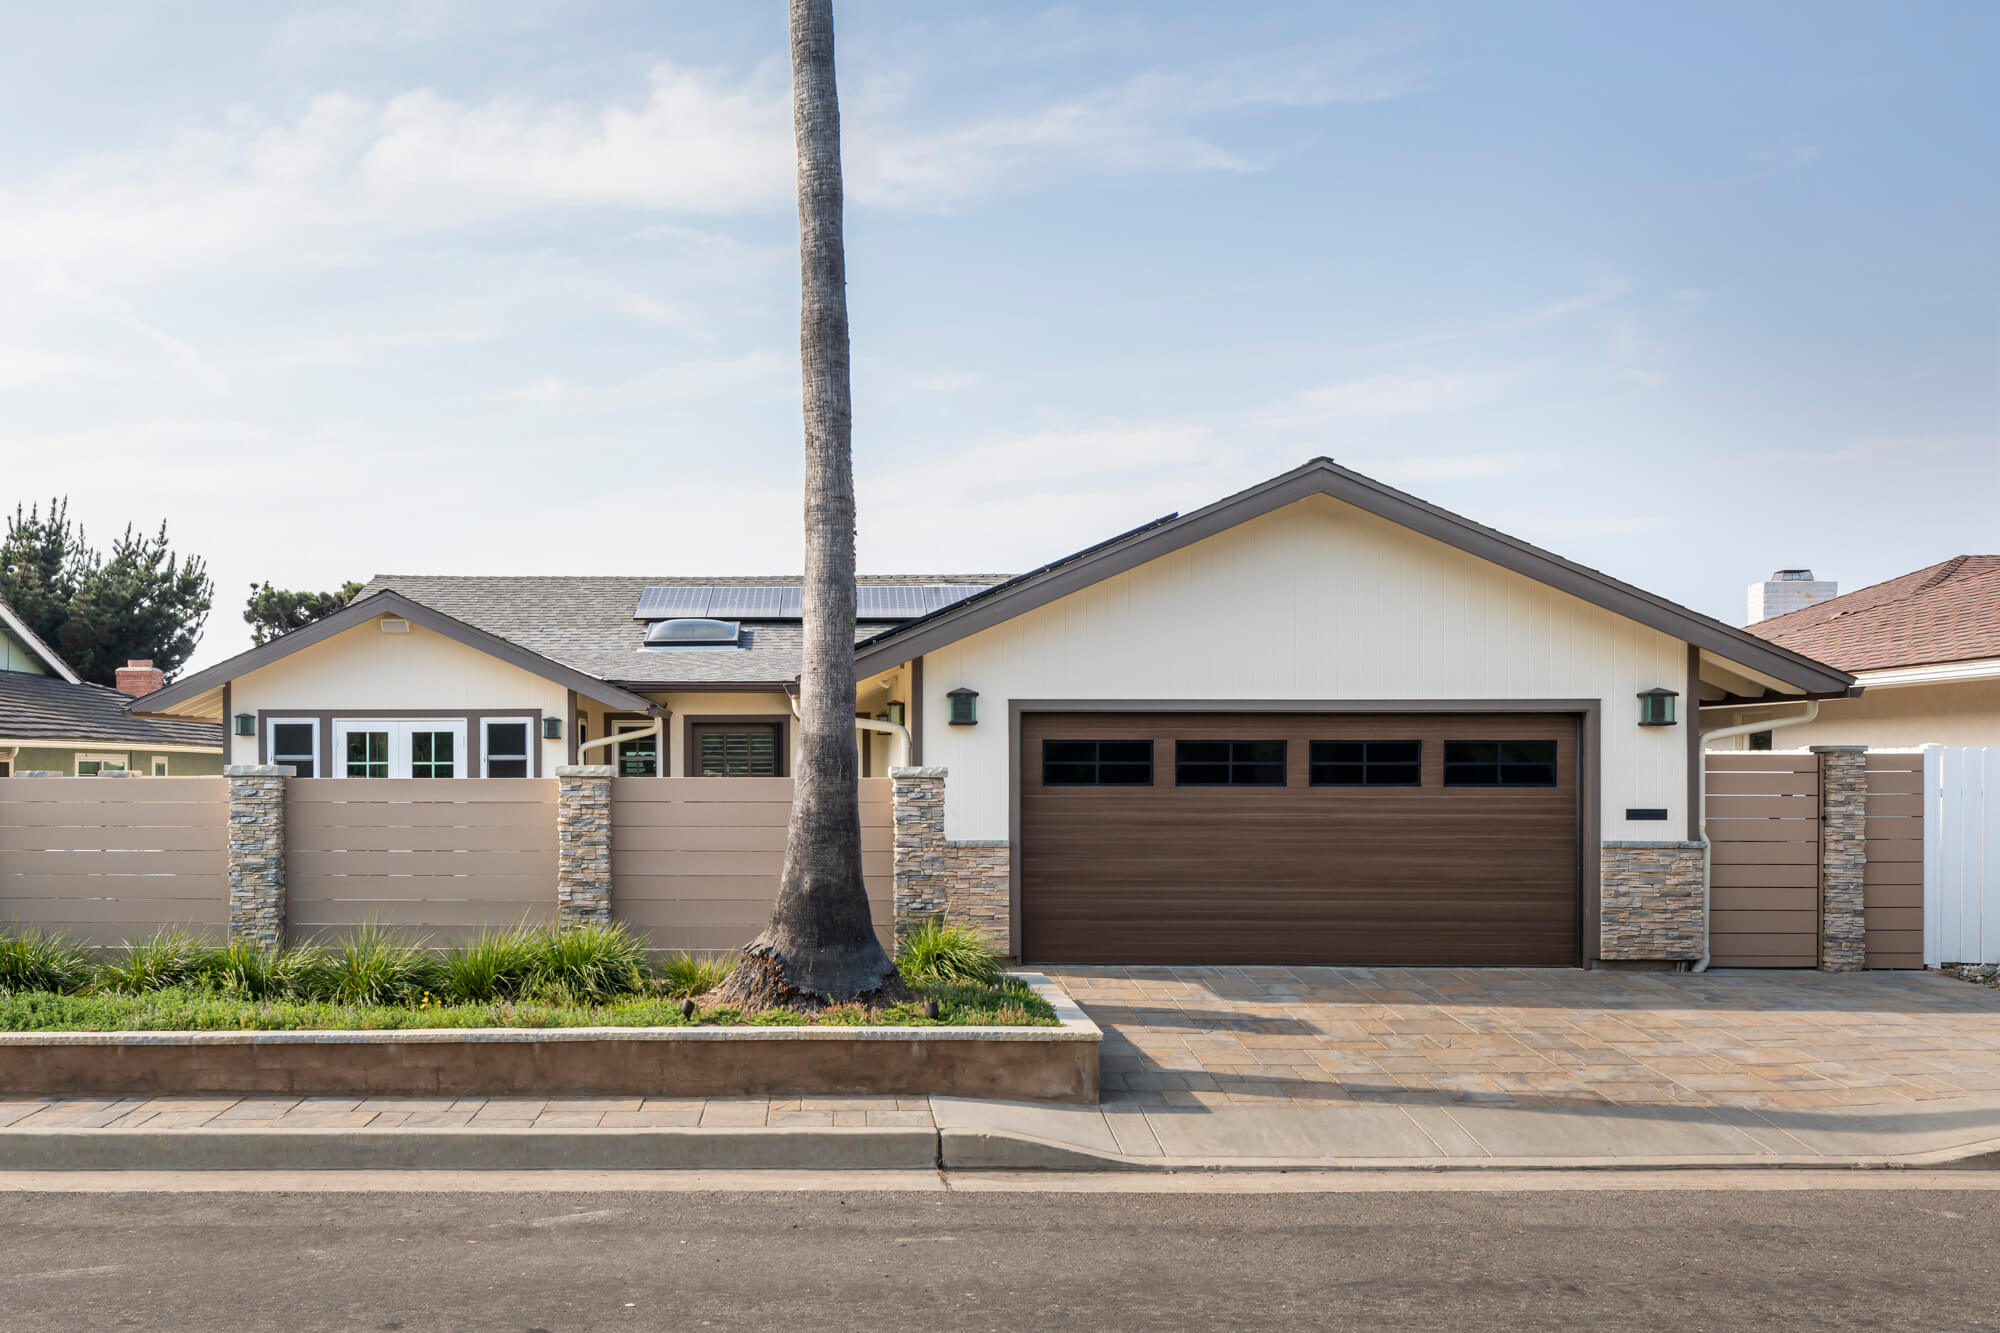 Street view of southern California home